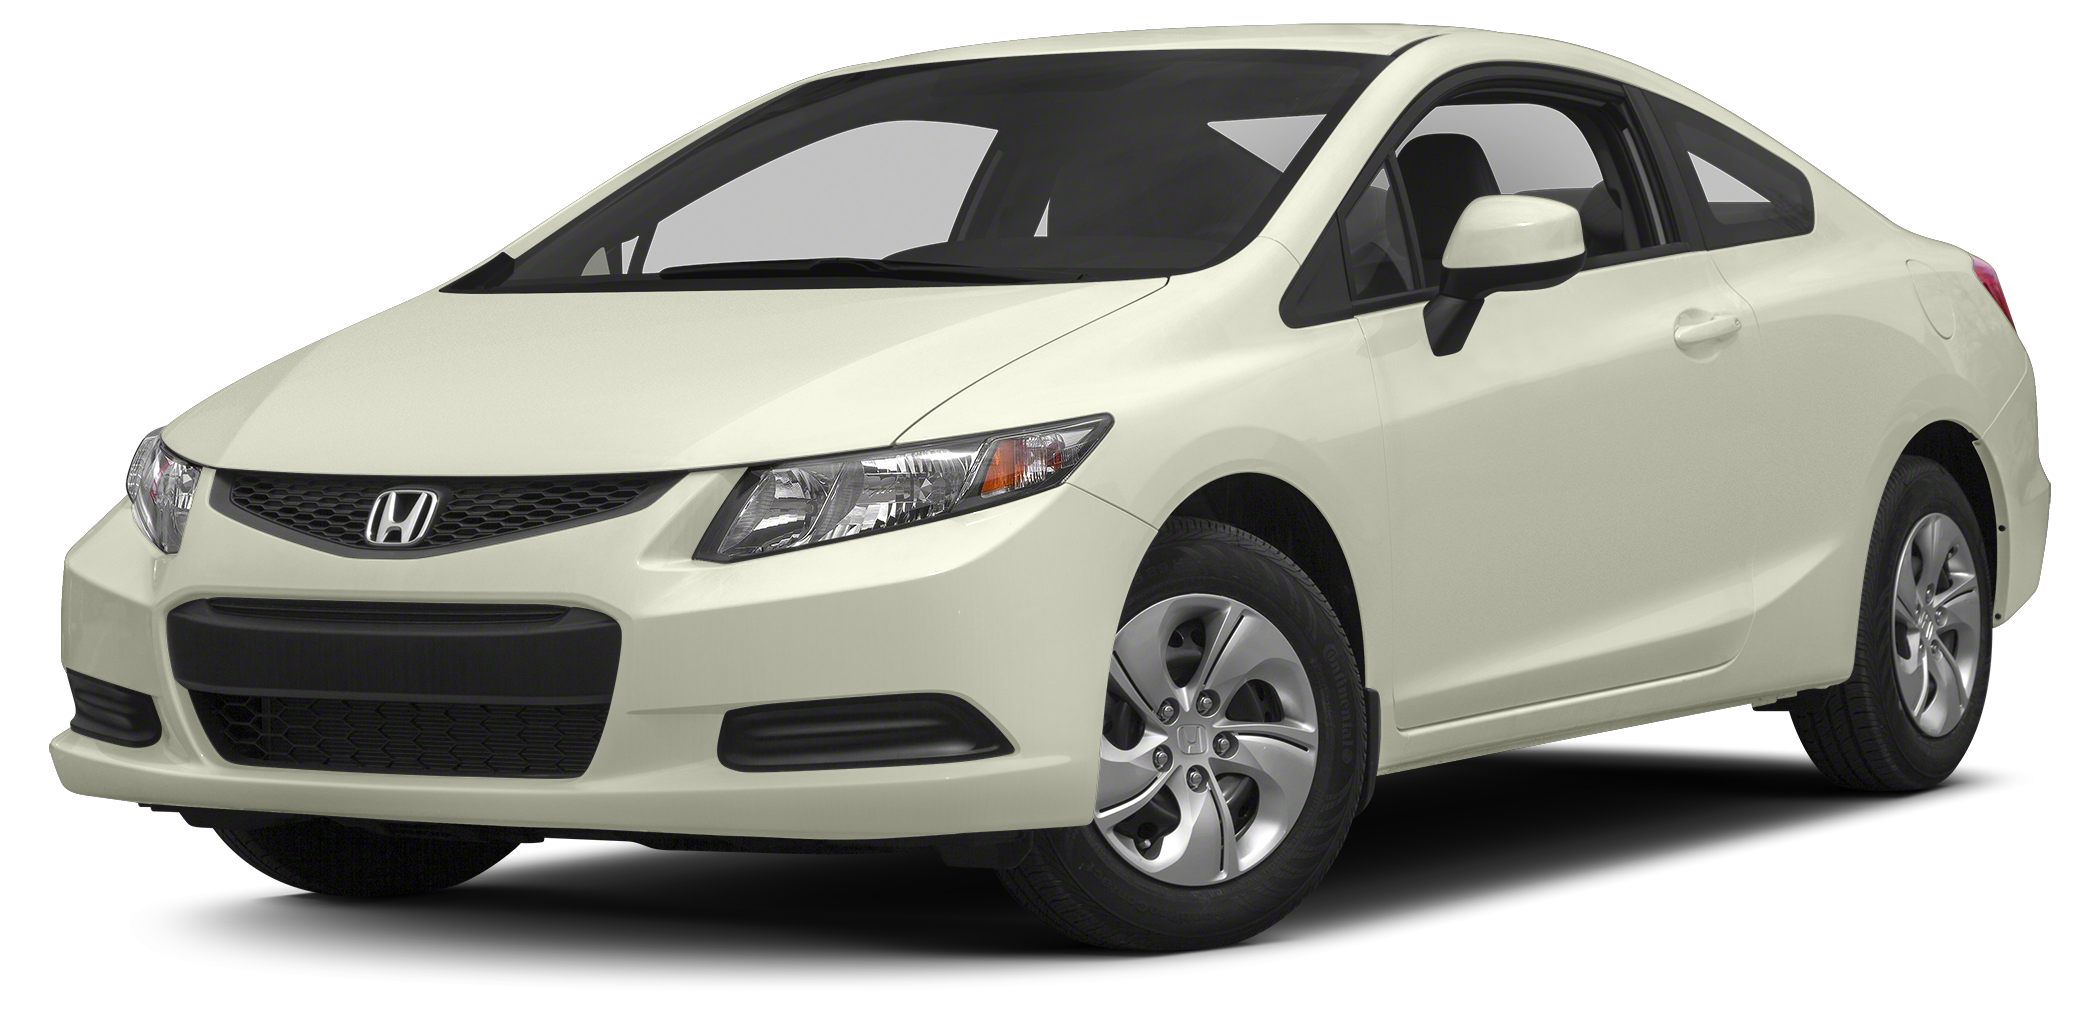 2013 Honda Civic LX WHITE COUPE CIVIC WELL KEPT COMES WITH BOOKS AND RECORDS VERY CLEAN VEHICLE